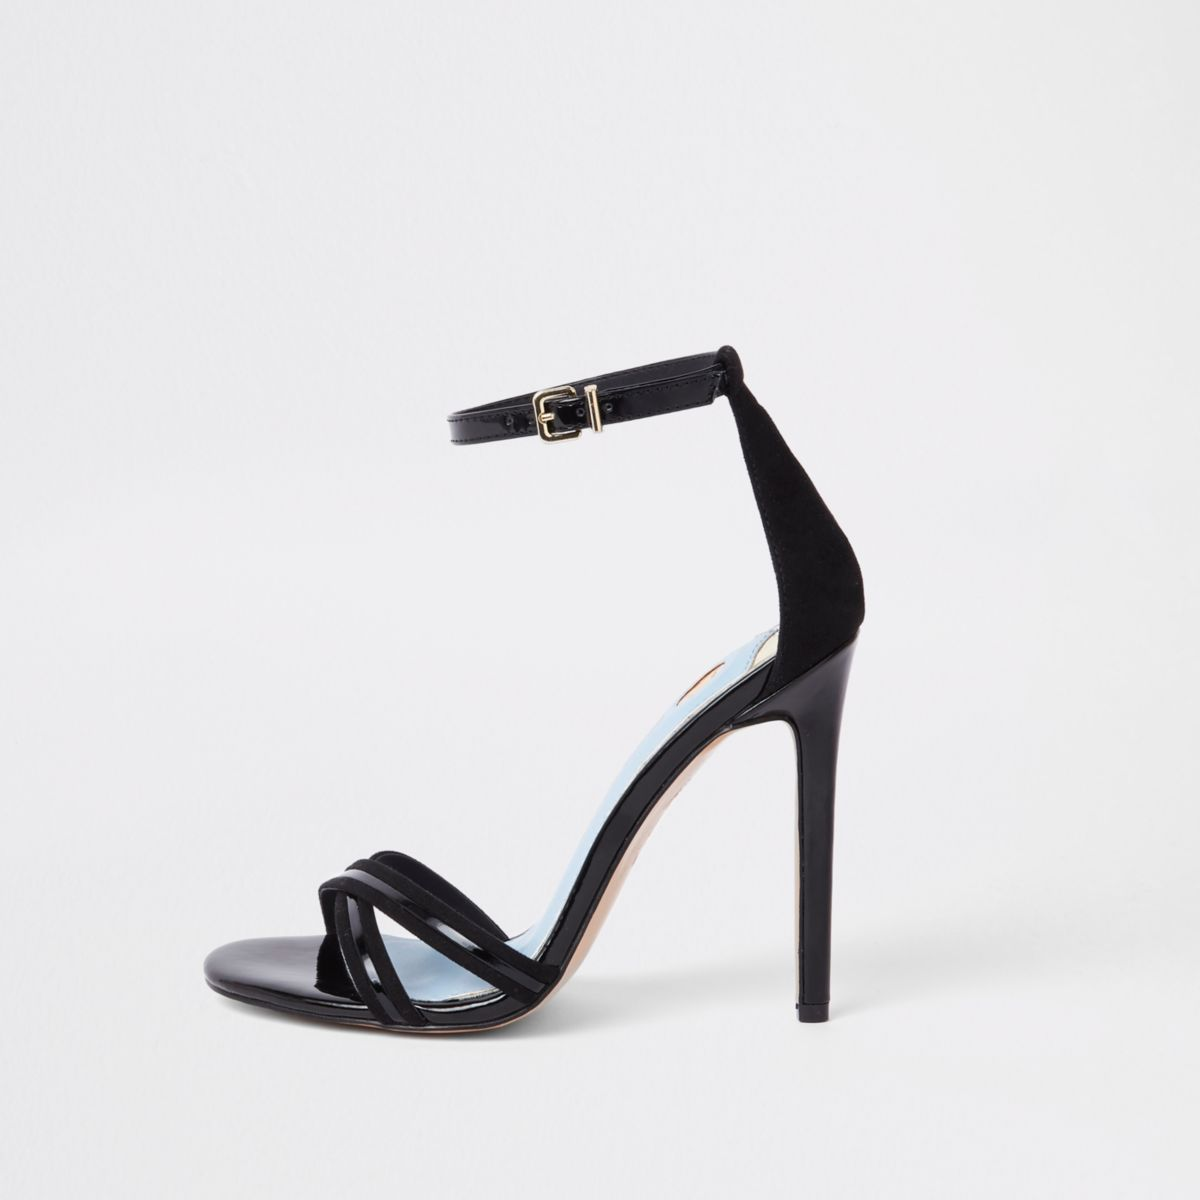 Black Cross Strap Barely There Sandals by River Island